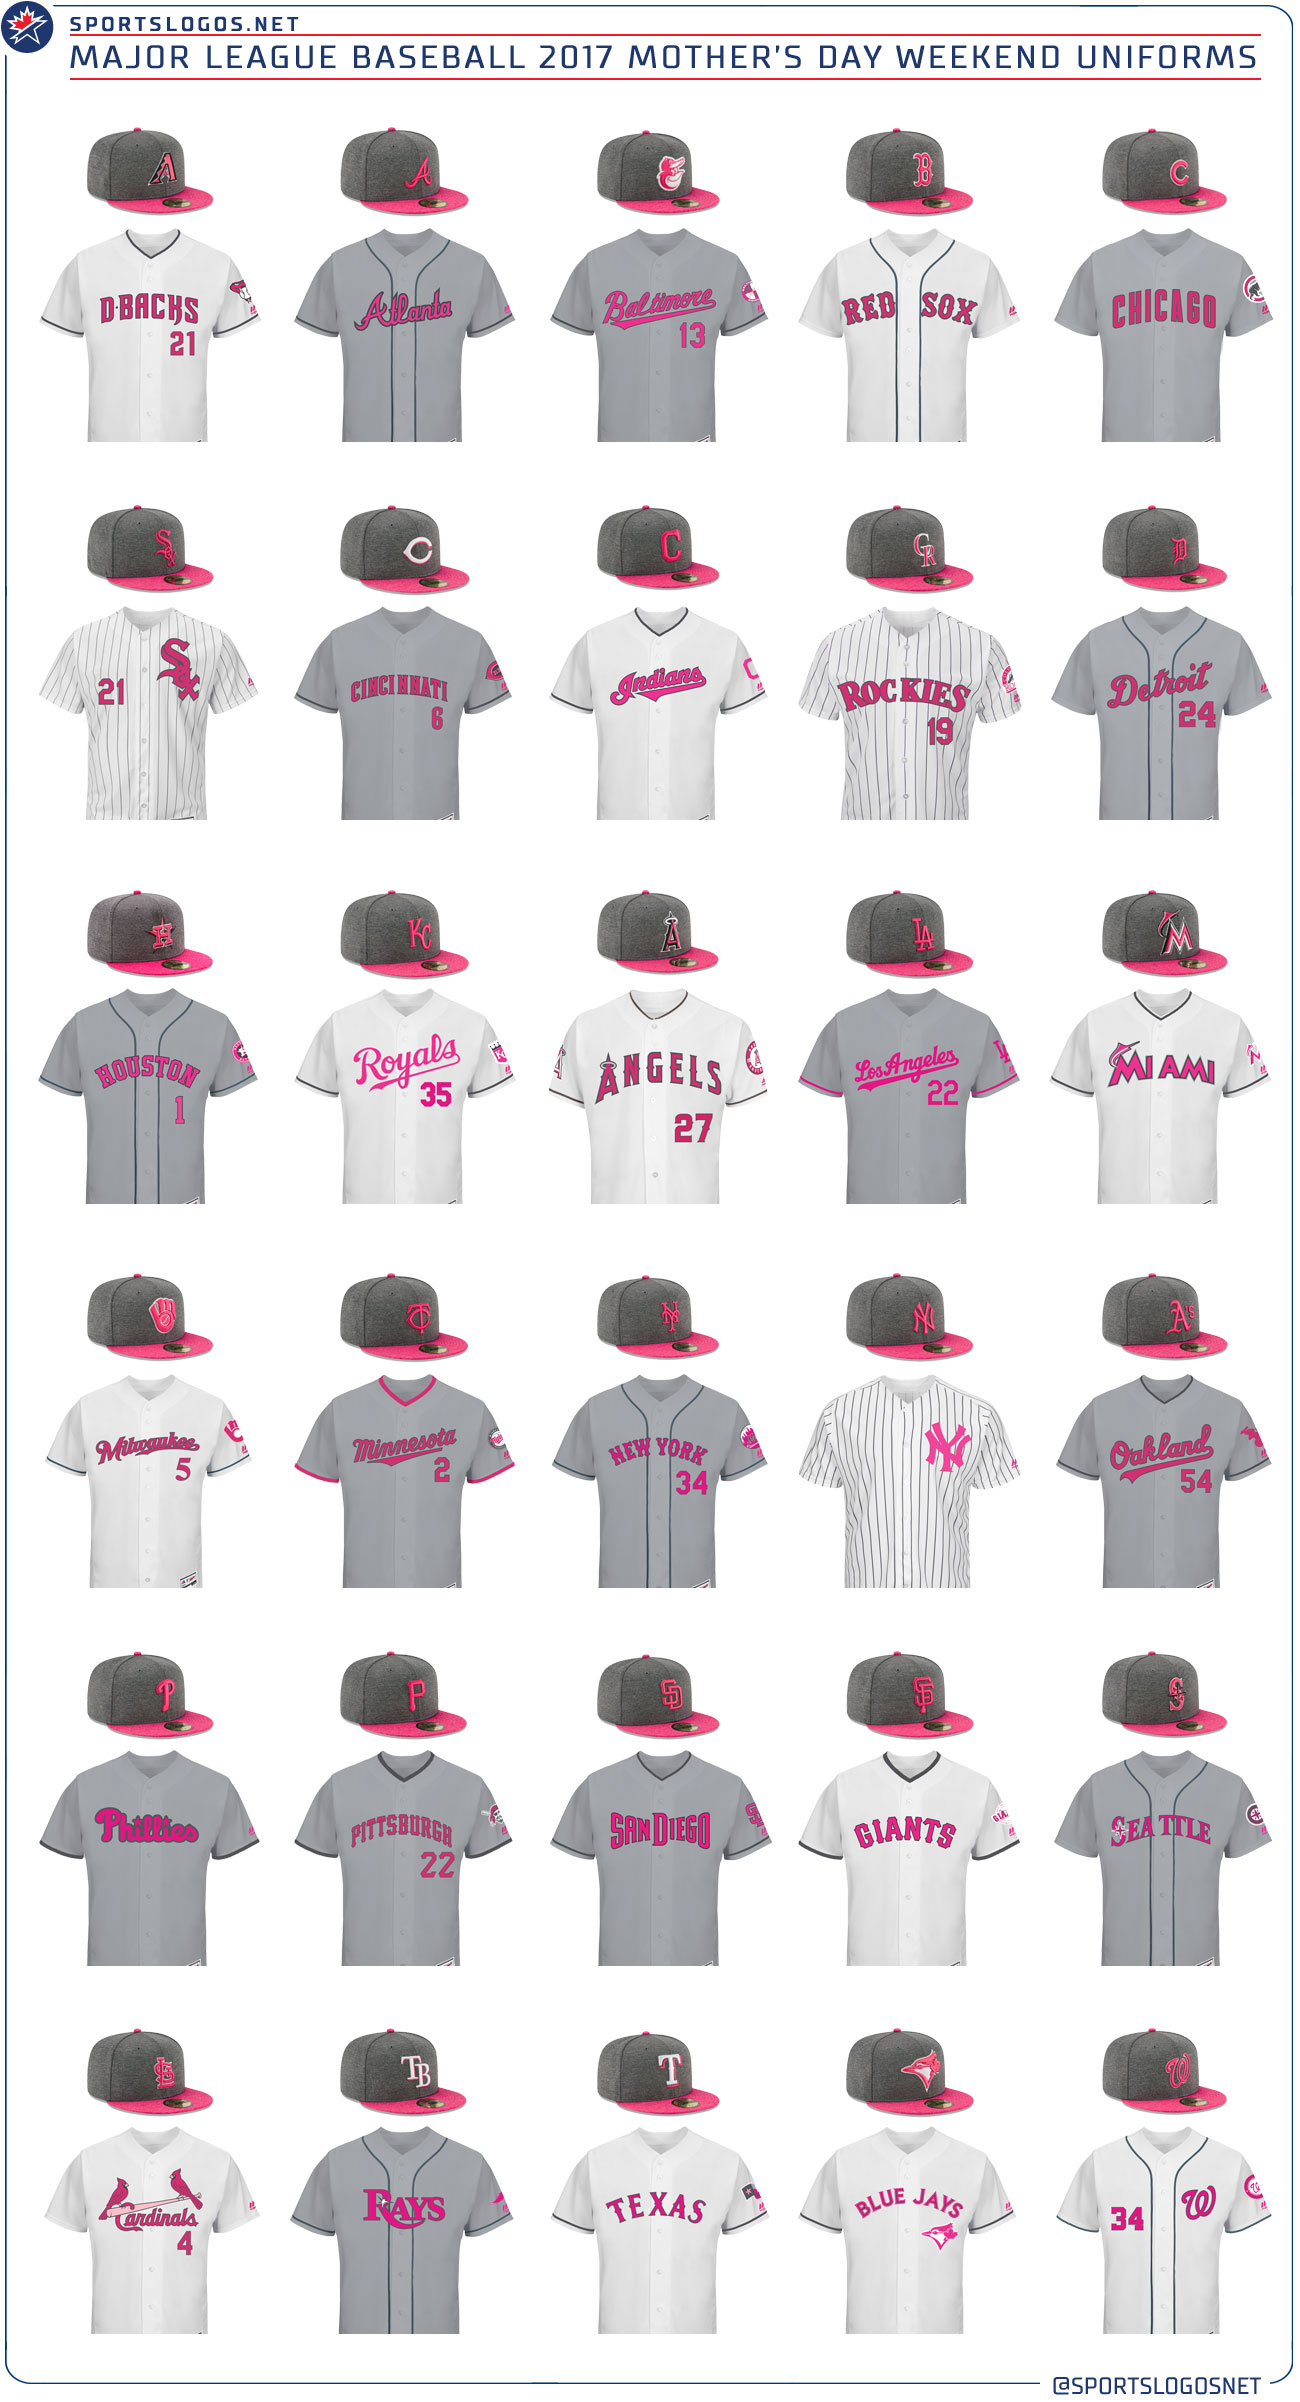 2017 MLB Mothers Day Weekend Uniforms 7be2d80ef14